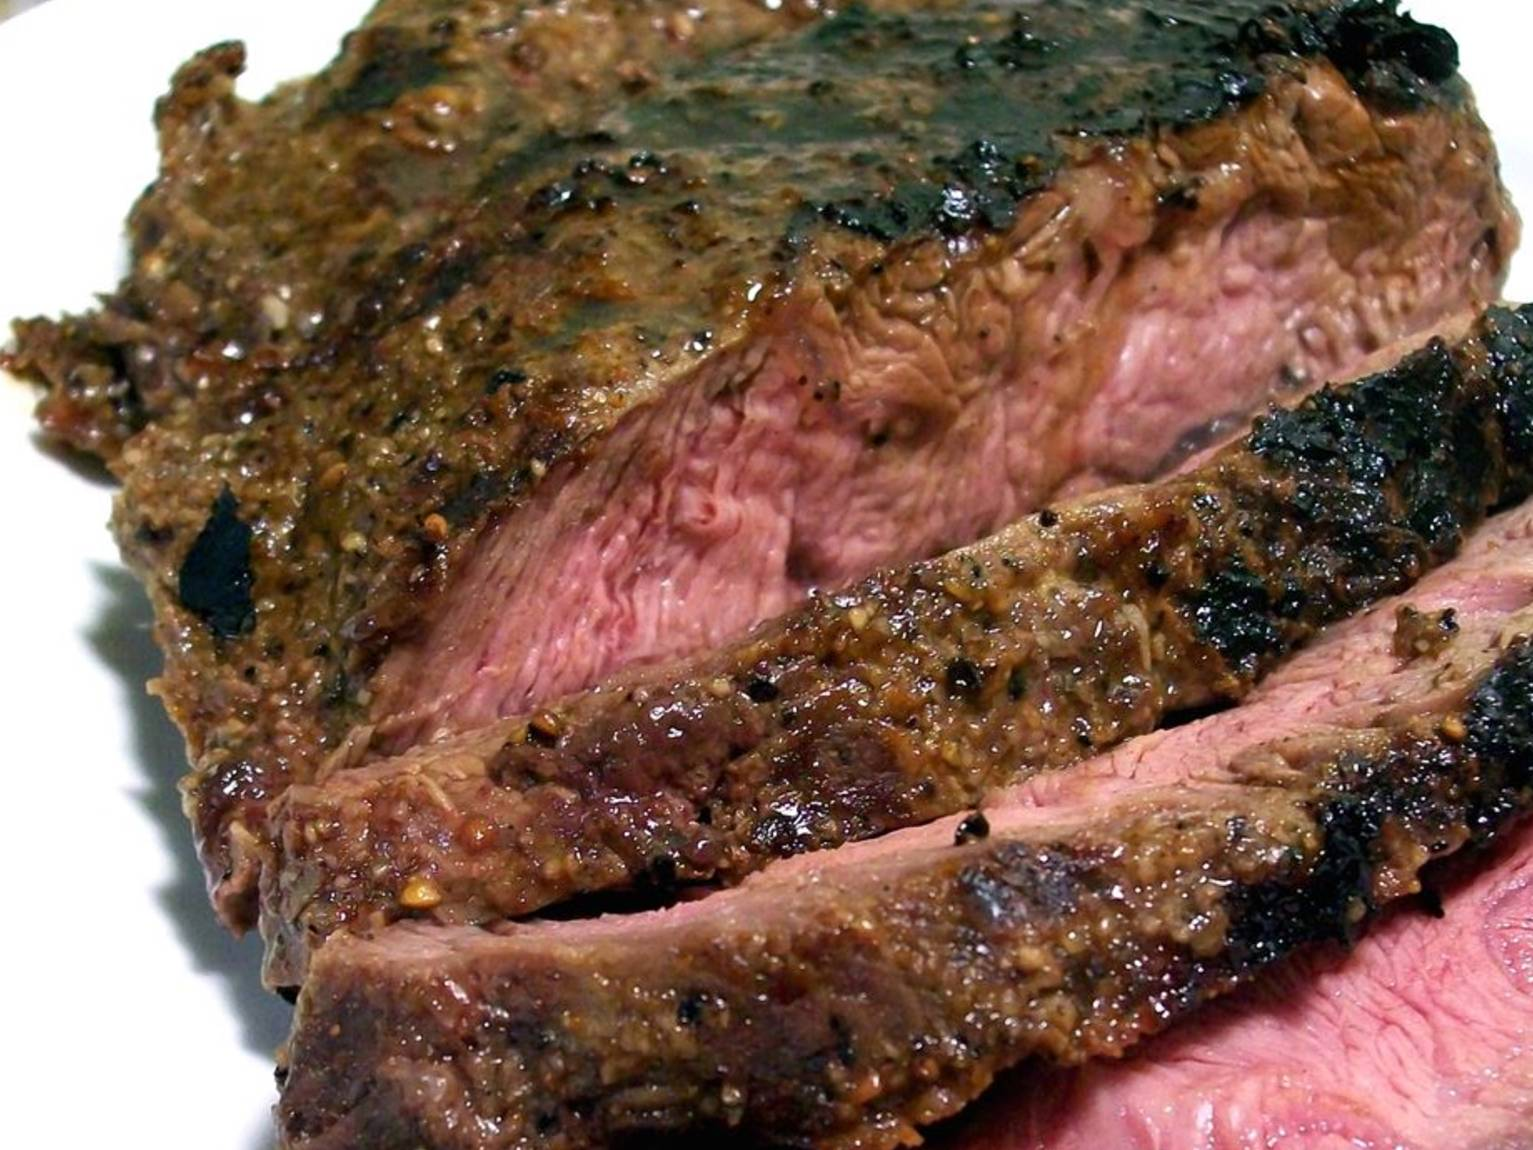 fresh-beef-steak-meat-delivery-dallas-ny-strip-whole-roast